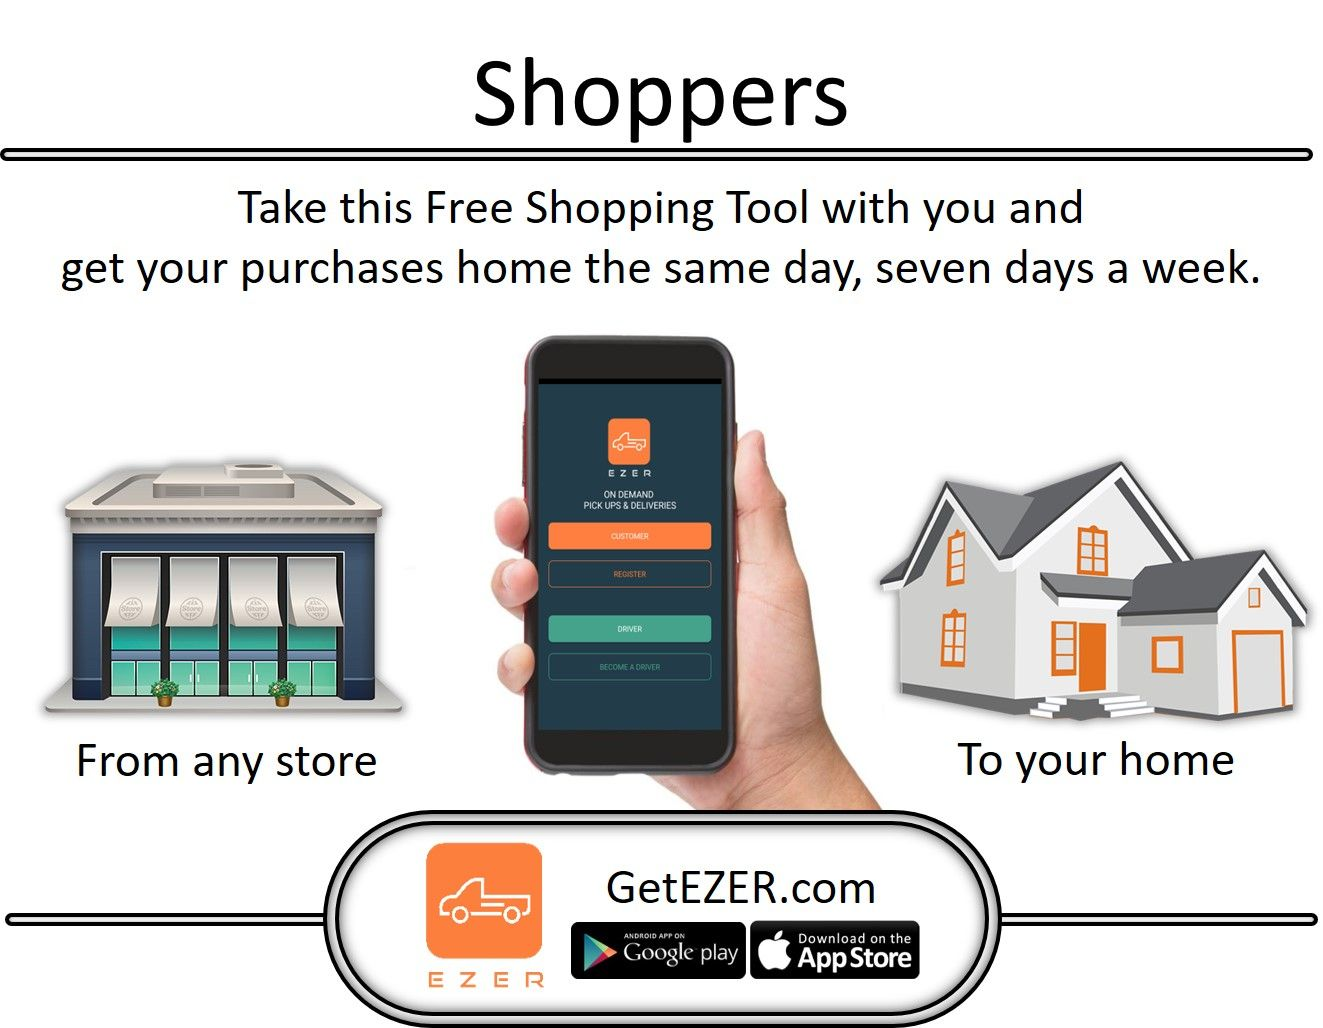 Shoppers – Take the EZER App with you. #SameDay #HomeDelivery #LocalDelivery #Shopping #ShoppingTool #ShoppingApp #SmallCars #LuxuryCars #DeliveryApp #DeliveryJobs #LocalDrivers #LocalJobs #SoCal #LA #IE #OC #Phoenix #Houston #Chicago #Miami #MIN #LasVegas